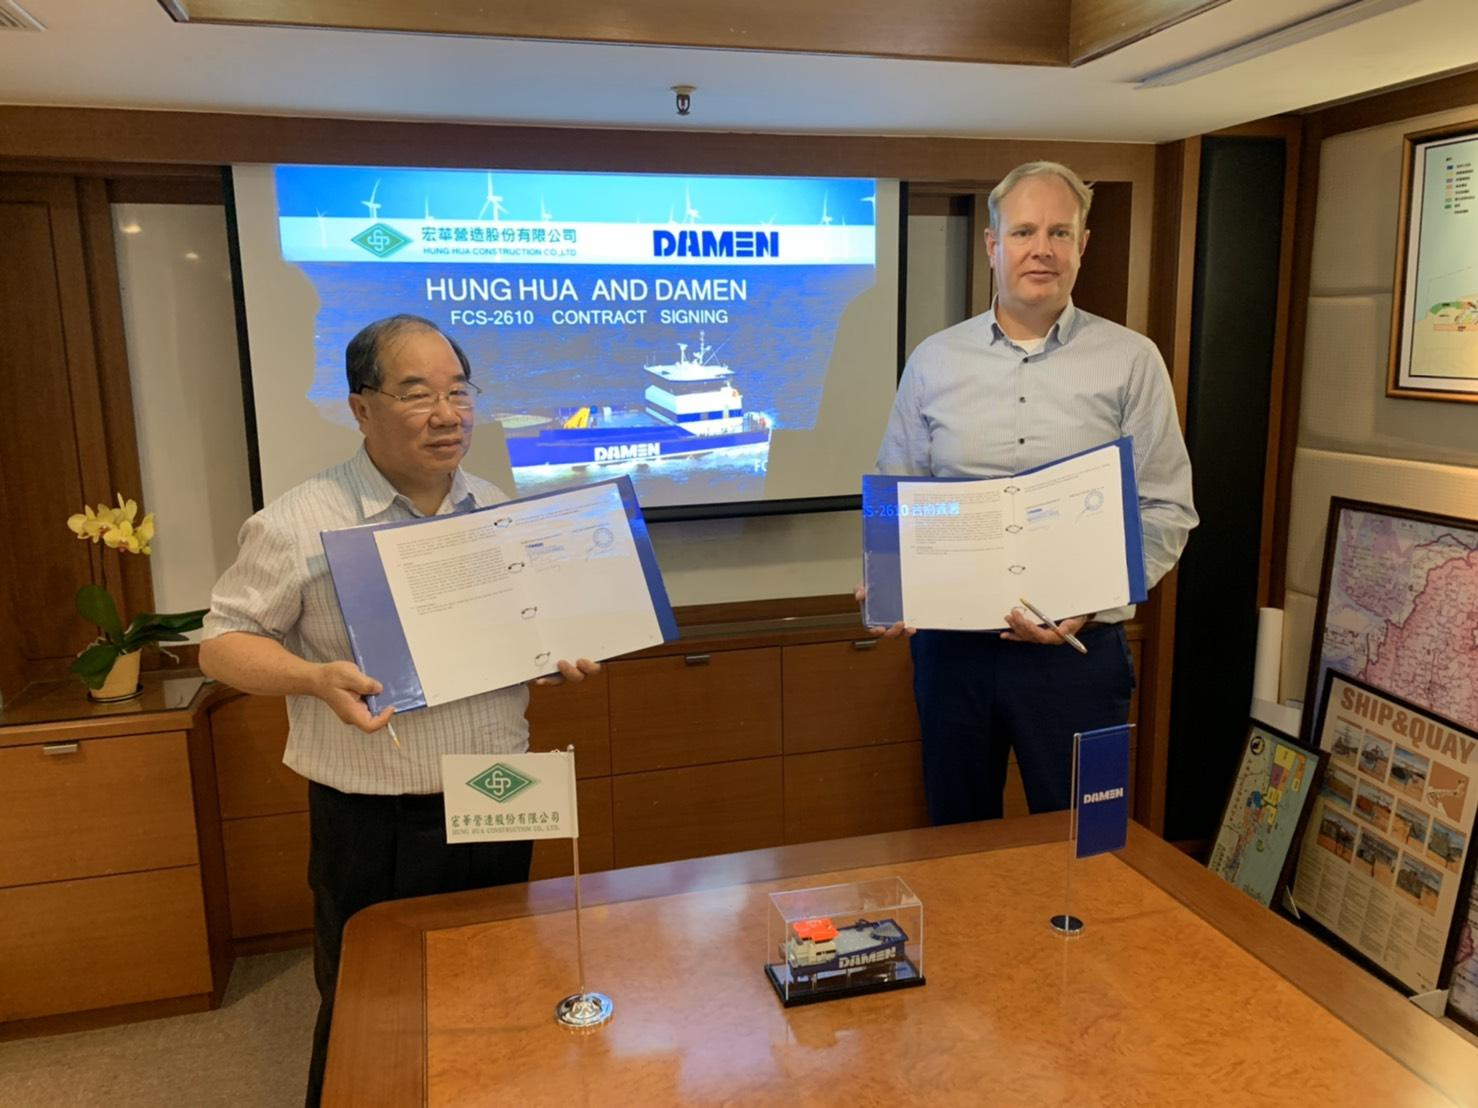 2 Hung Hua Construction and Damen contract signing